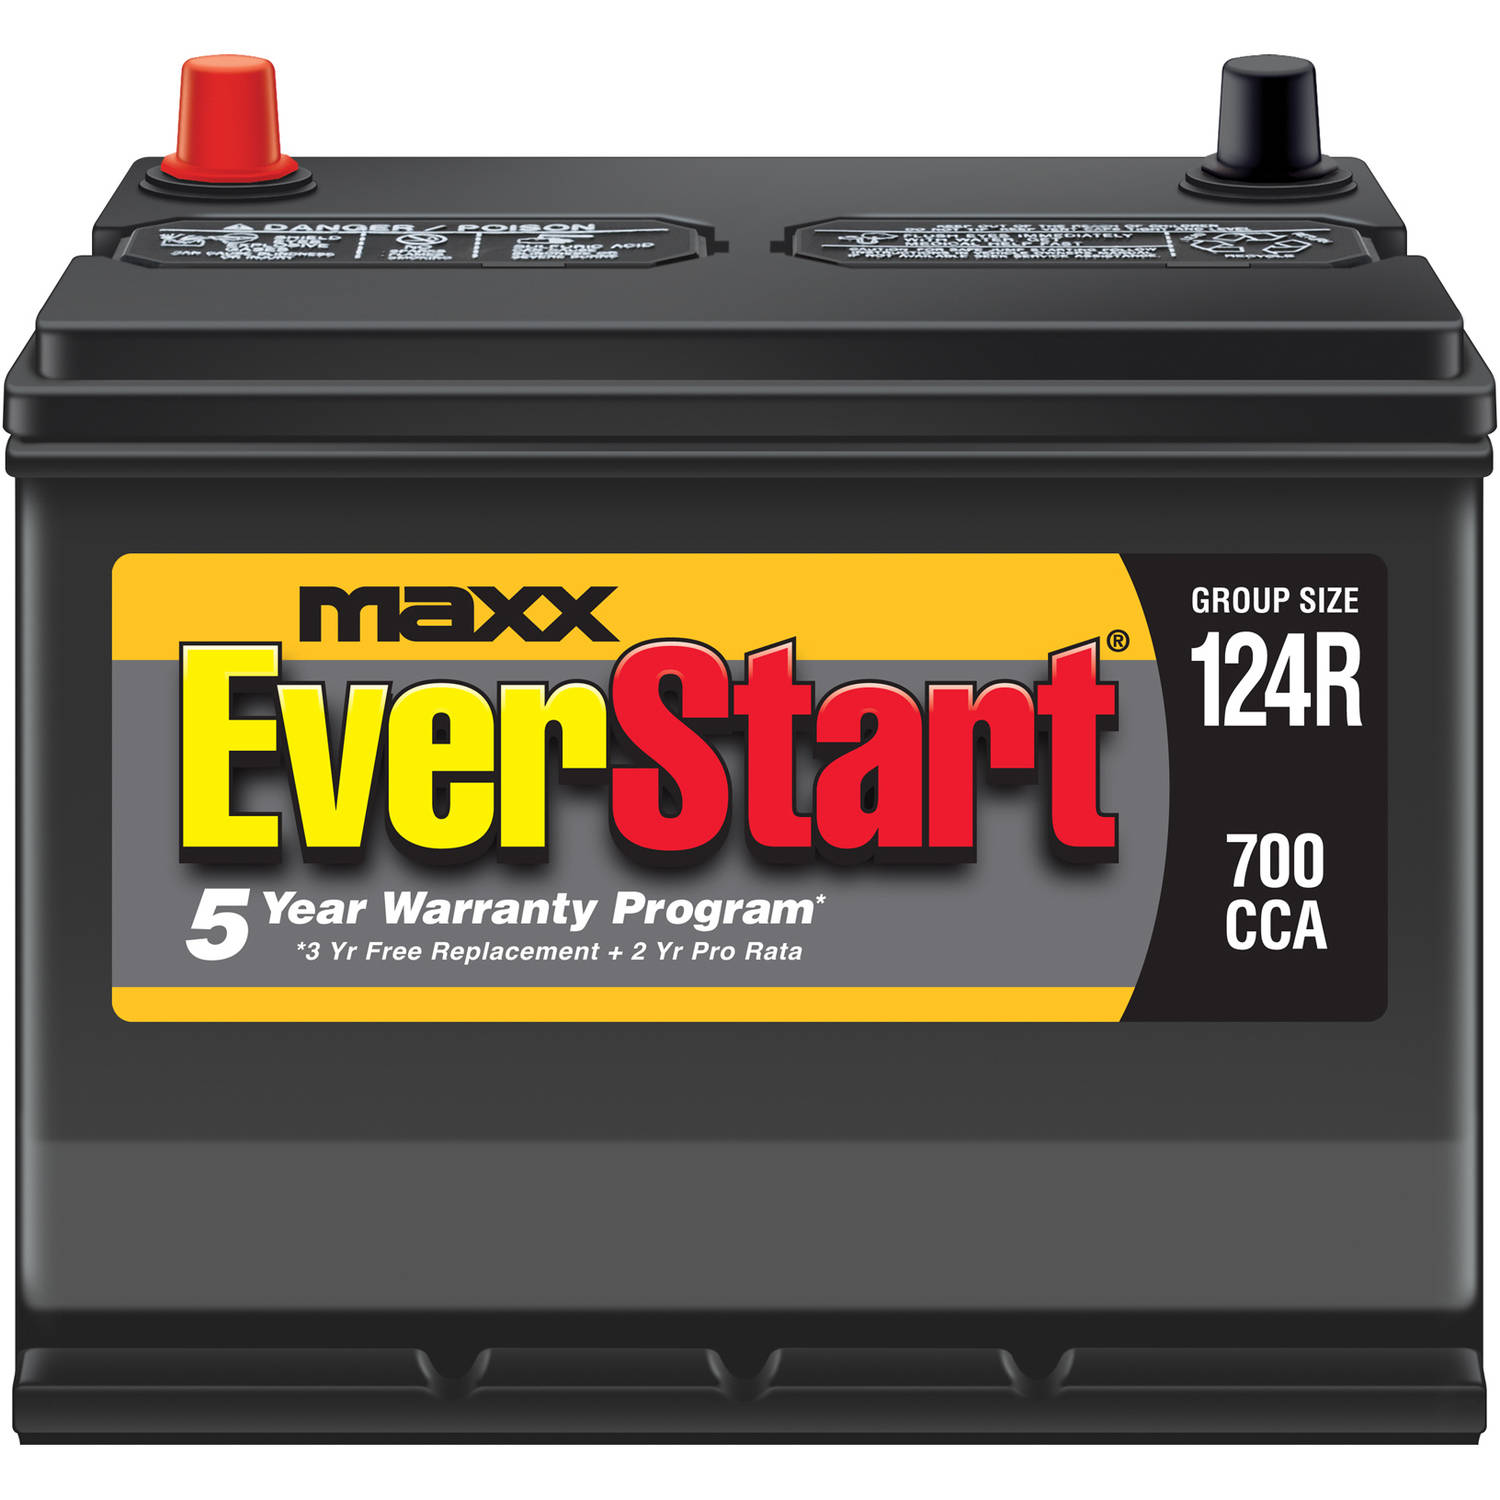 EverStart Maxx Lead Acid Automotive Battery, Group 124R